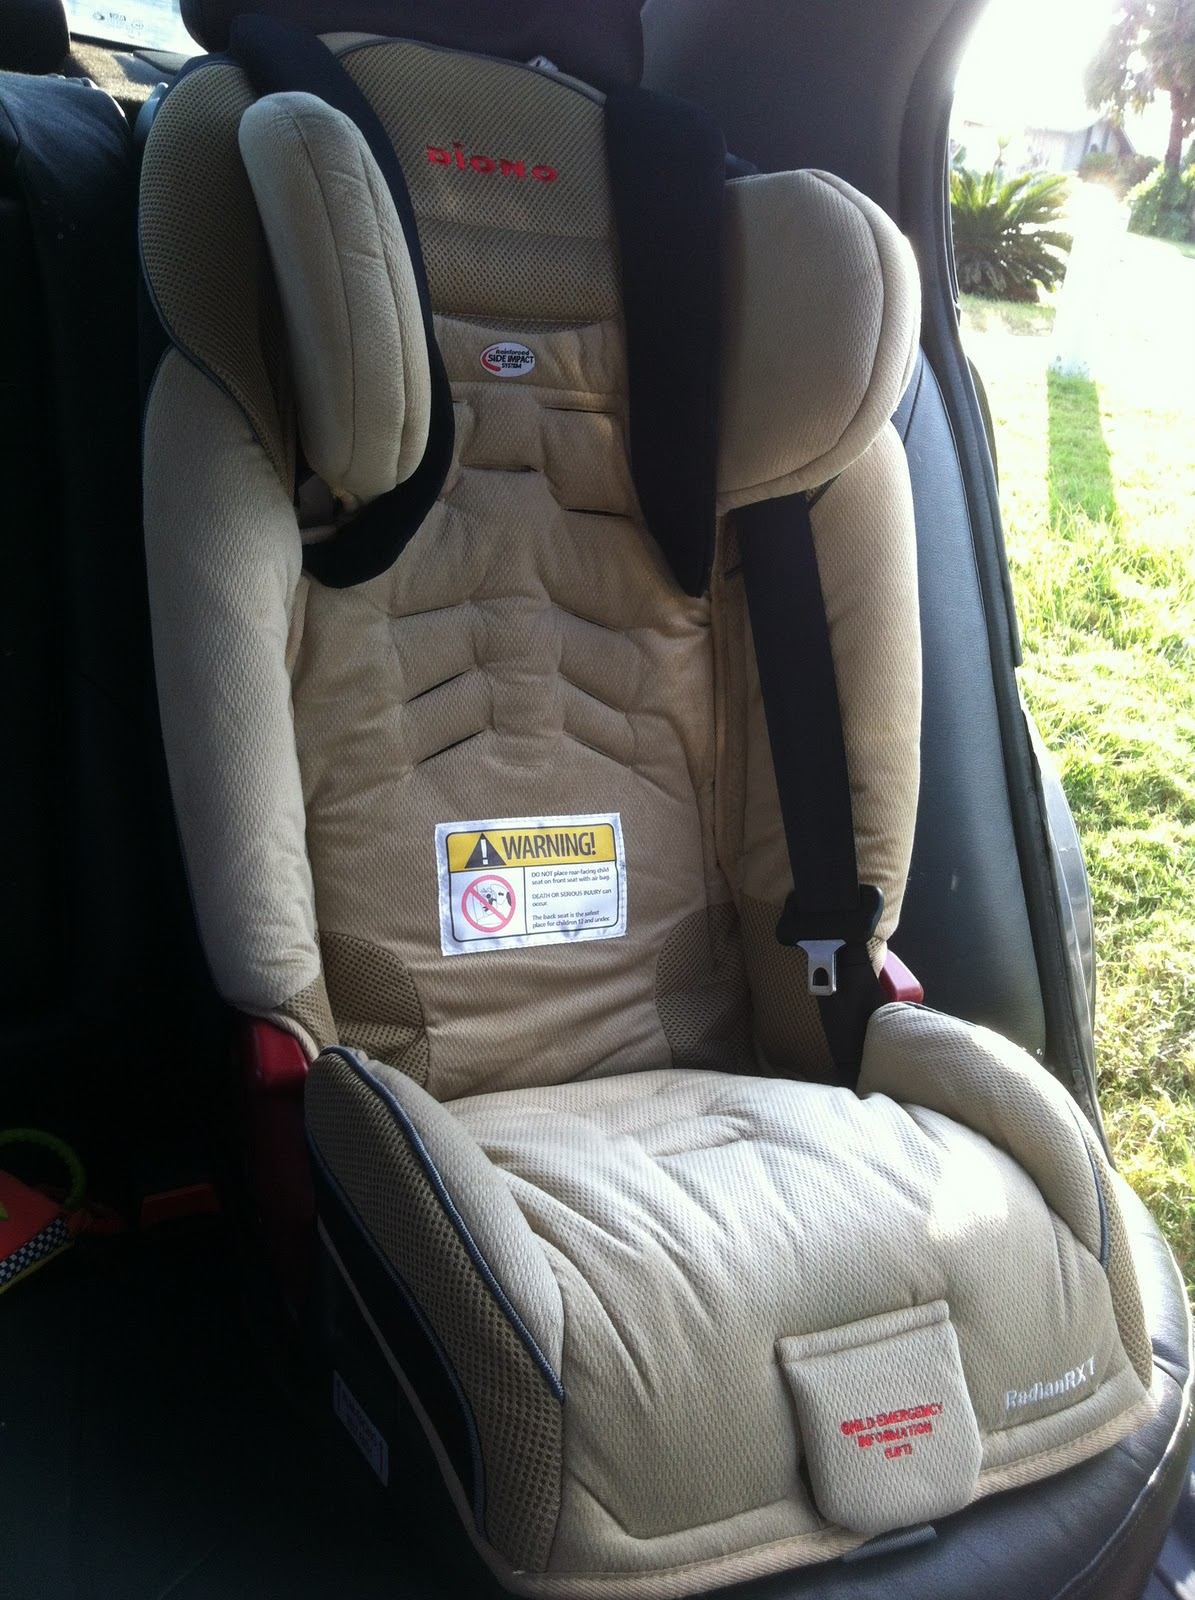 diono radian car seat manual